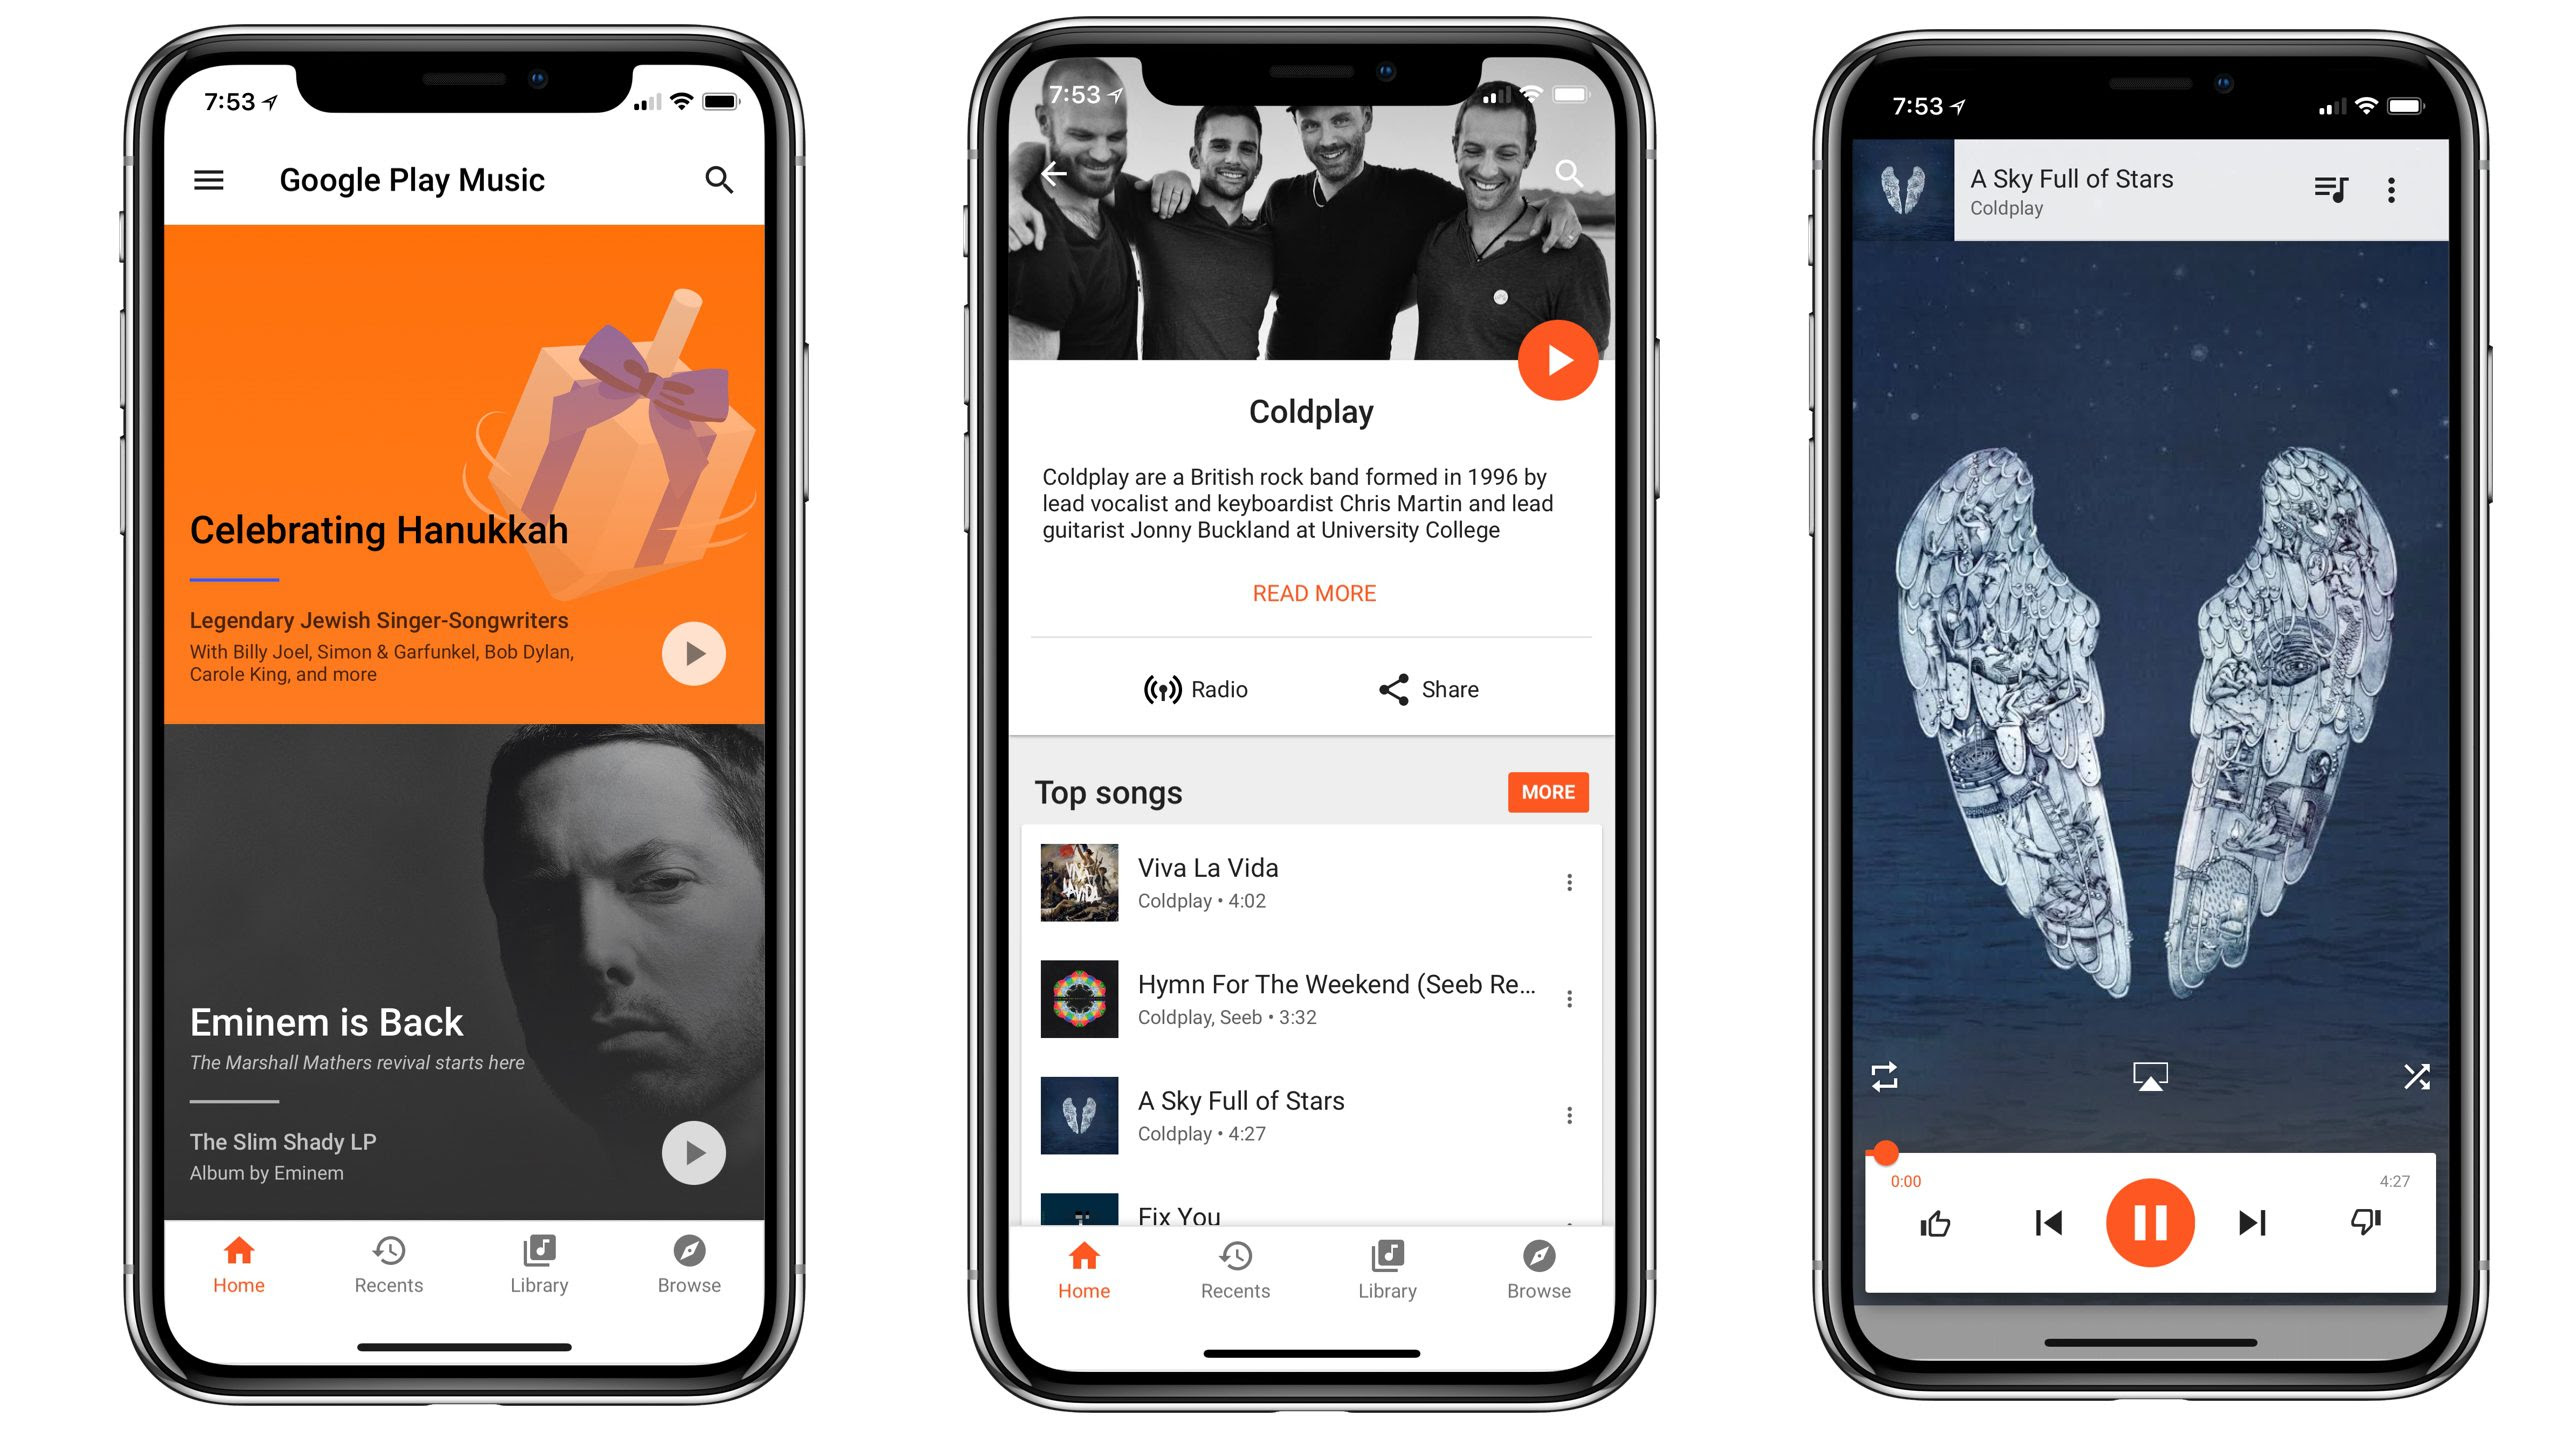 Google Play Music Updated With Support For Iphone X